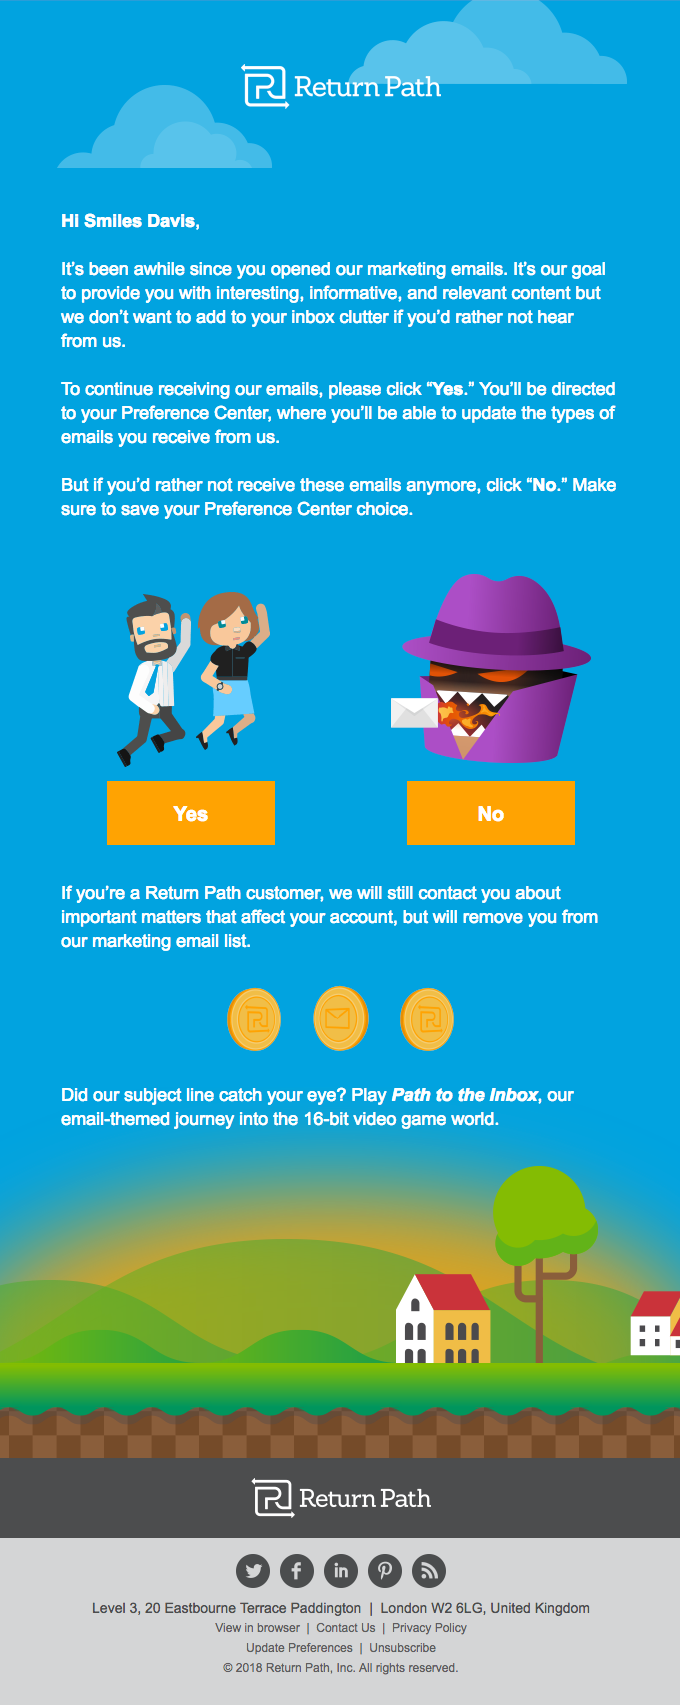 Get an extra life and keep your emails going